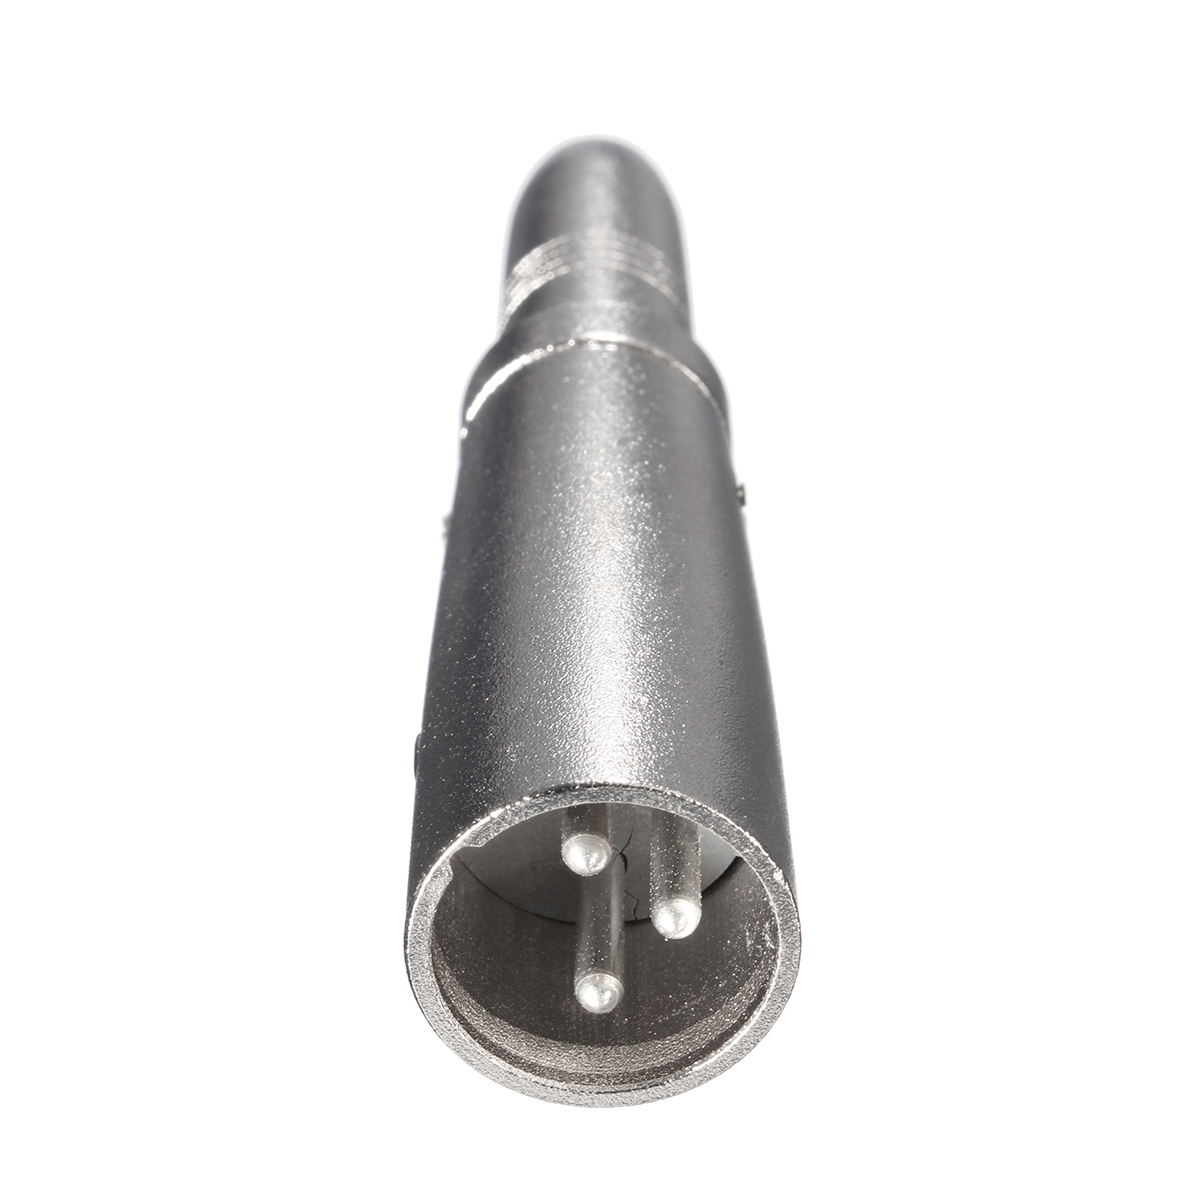 6.35mm 3 Core Pins Female To XLR Male Microphone Metal Adapter Connector Socket Plug